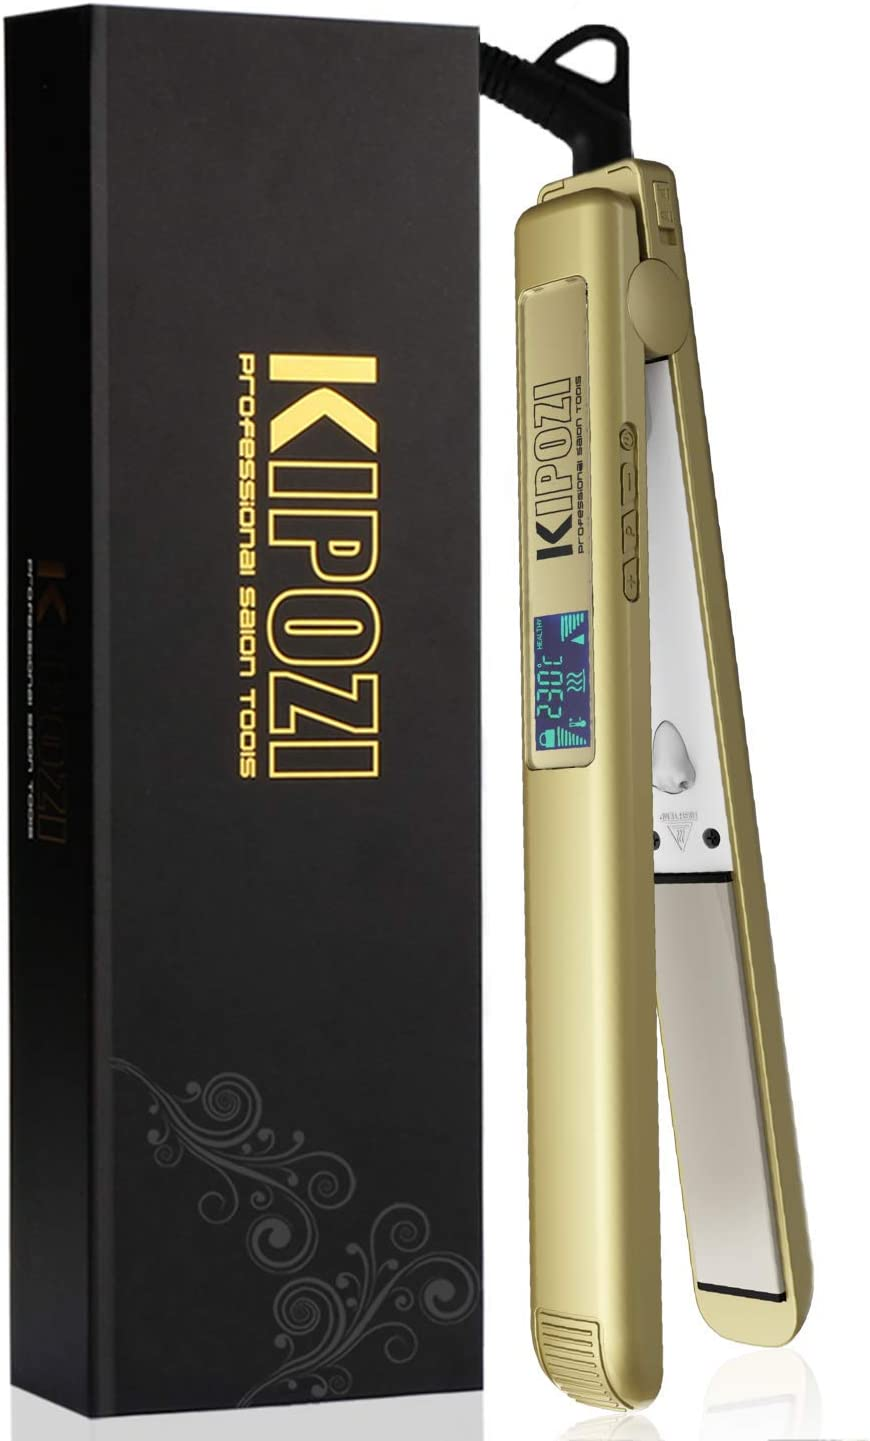 KIPOZI Pro Hair Straighteners for Women, with Adjustable Temperature Flat Iron, Dual Voltage UK Plug,Gold